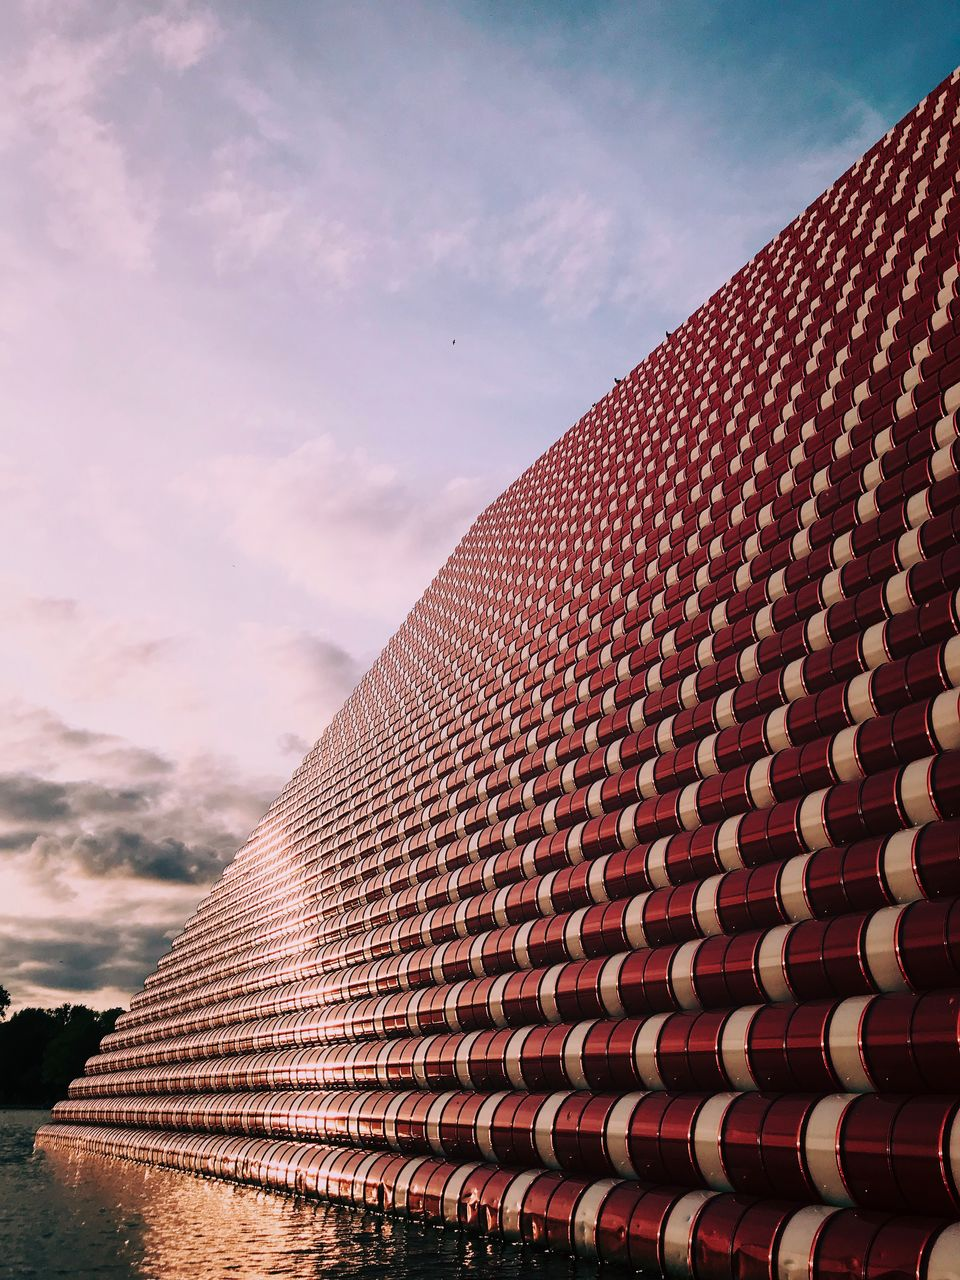 sky, architecture, cloud - sky, built structure, building exterior, pattern, low angle view, building, no people, nature, day, outdoors, roof, roof tile, city, modern, repetition, in a row, sunlight, textured